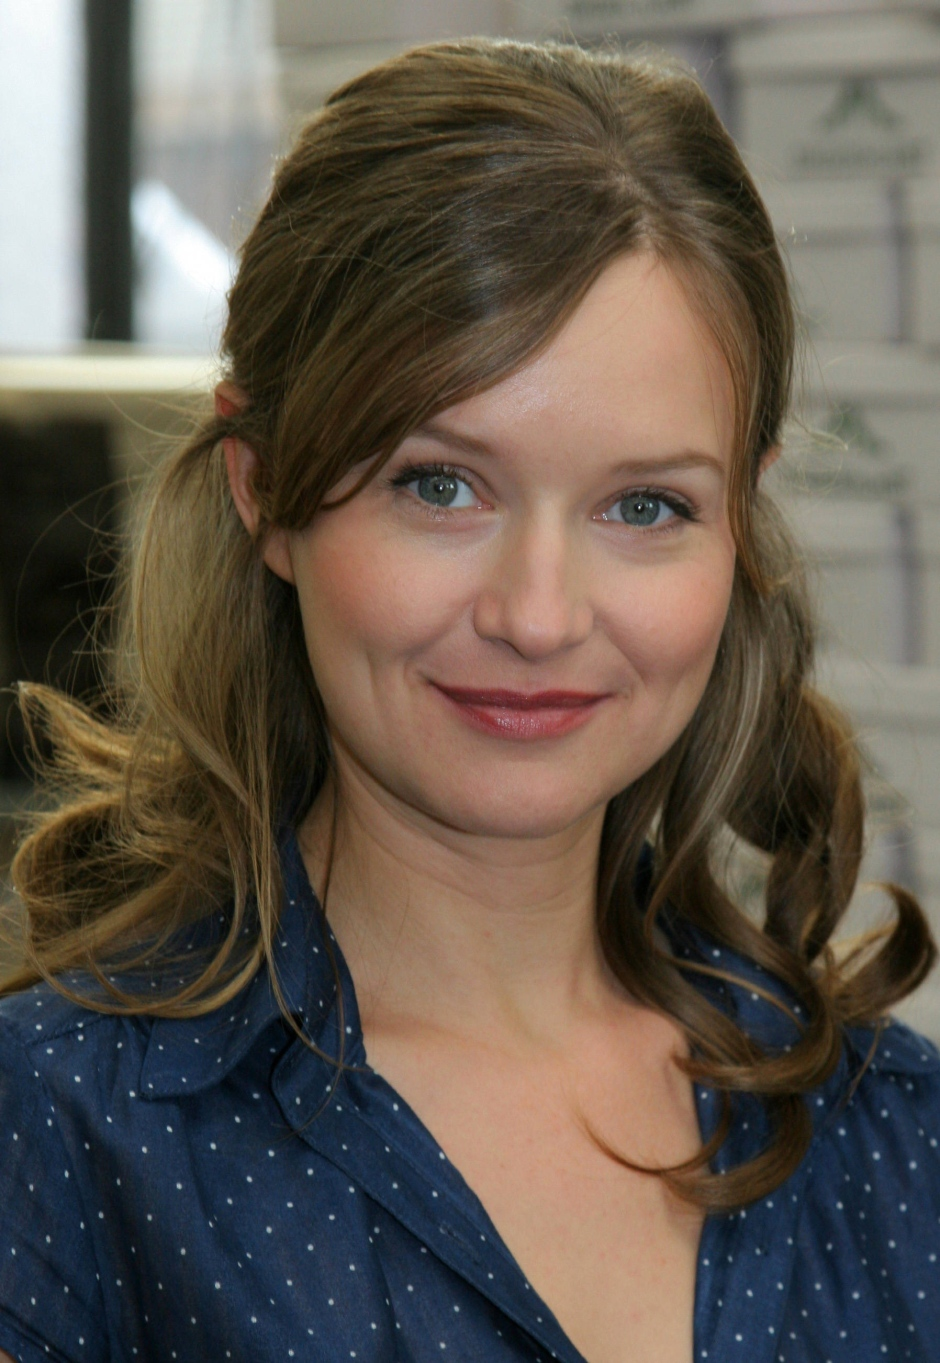 Stephanie Stappenbeck - the beautiful, cute, actress with German roots in 2021